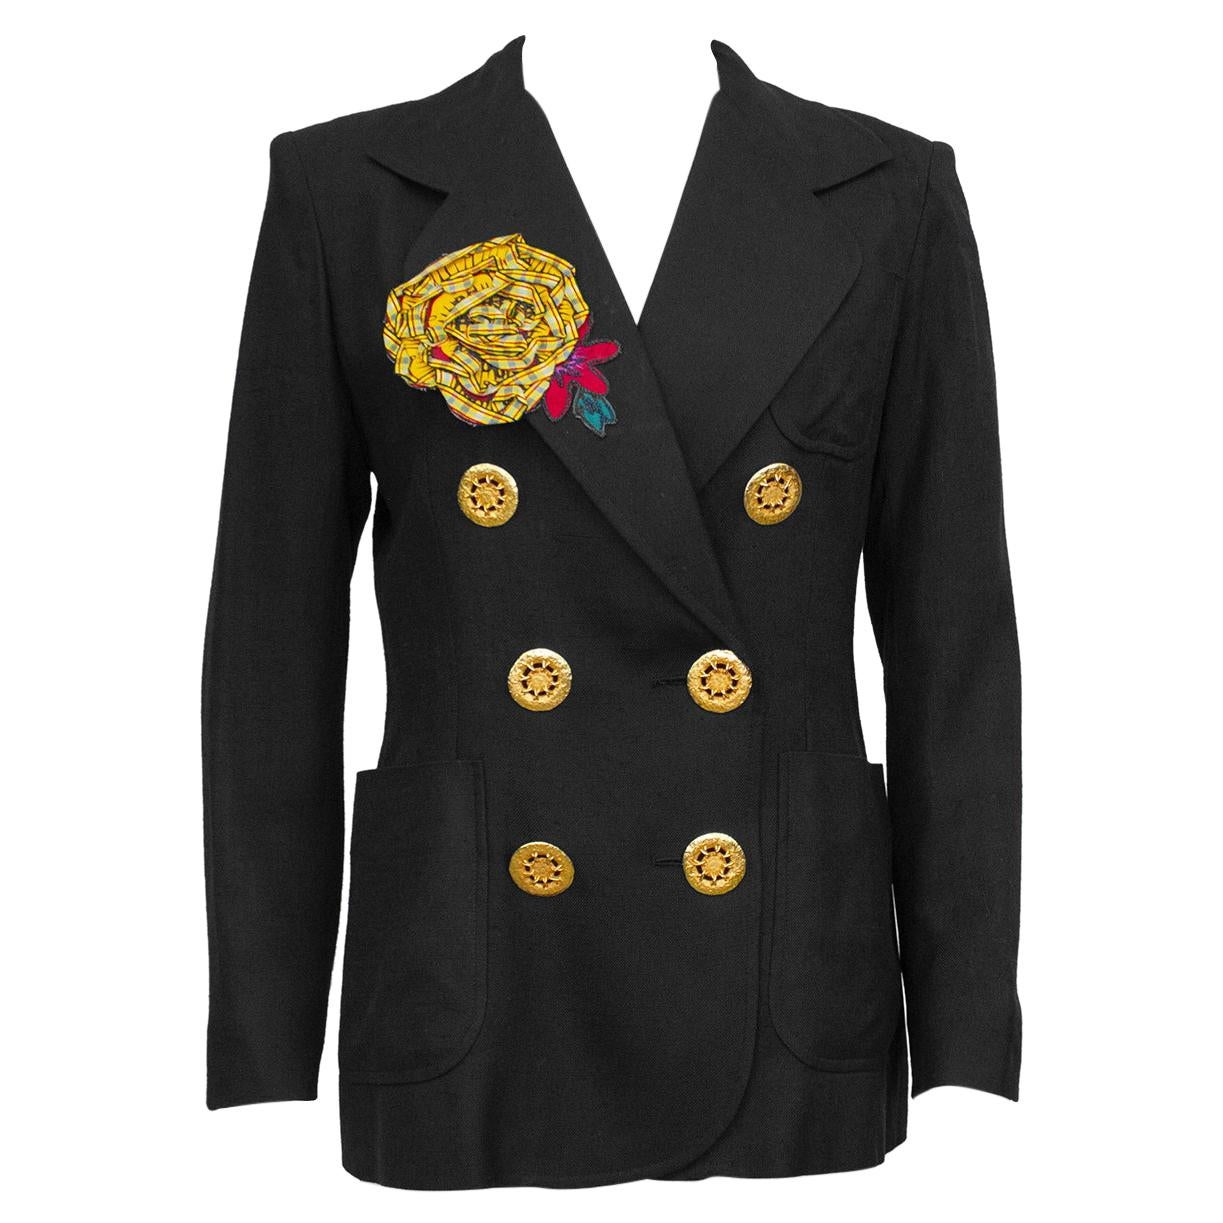 1990S Christian Lacroix Black Linen Double Breasted Jacket with Flower